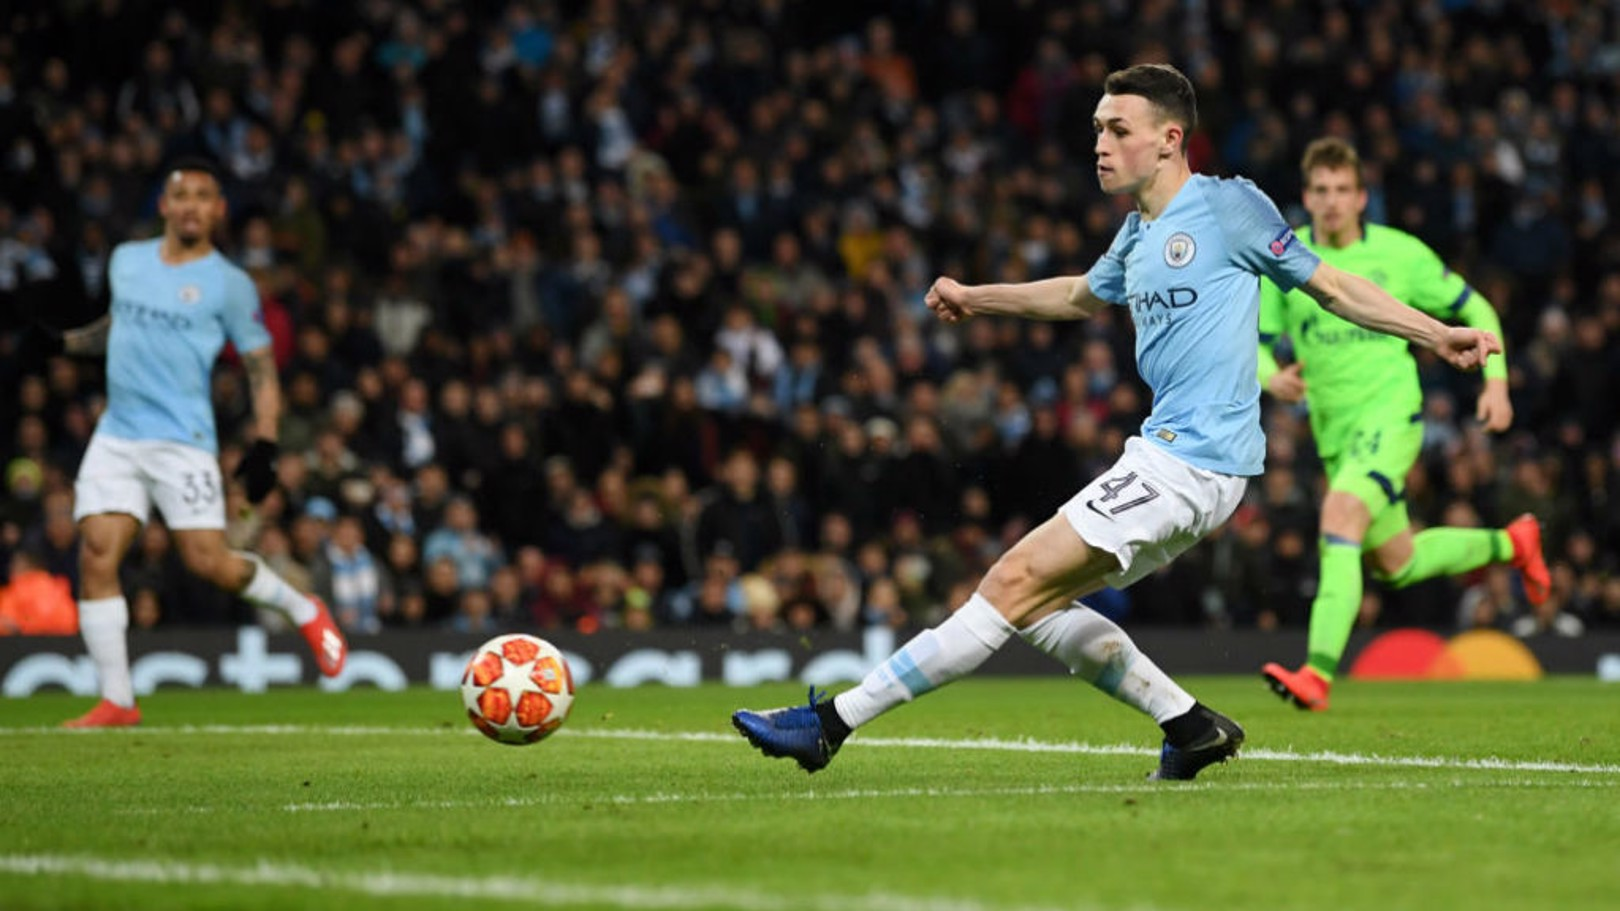 ENGLAND: Phil Foden has been called up the U21 squad - and Joleon Lescott has a new role